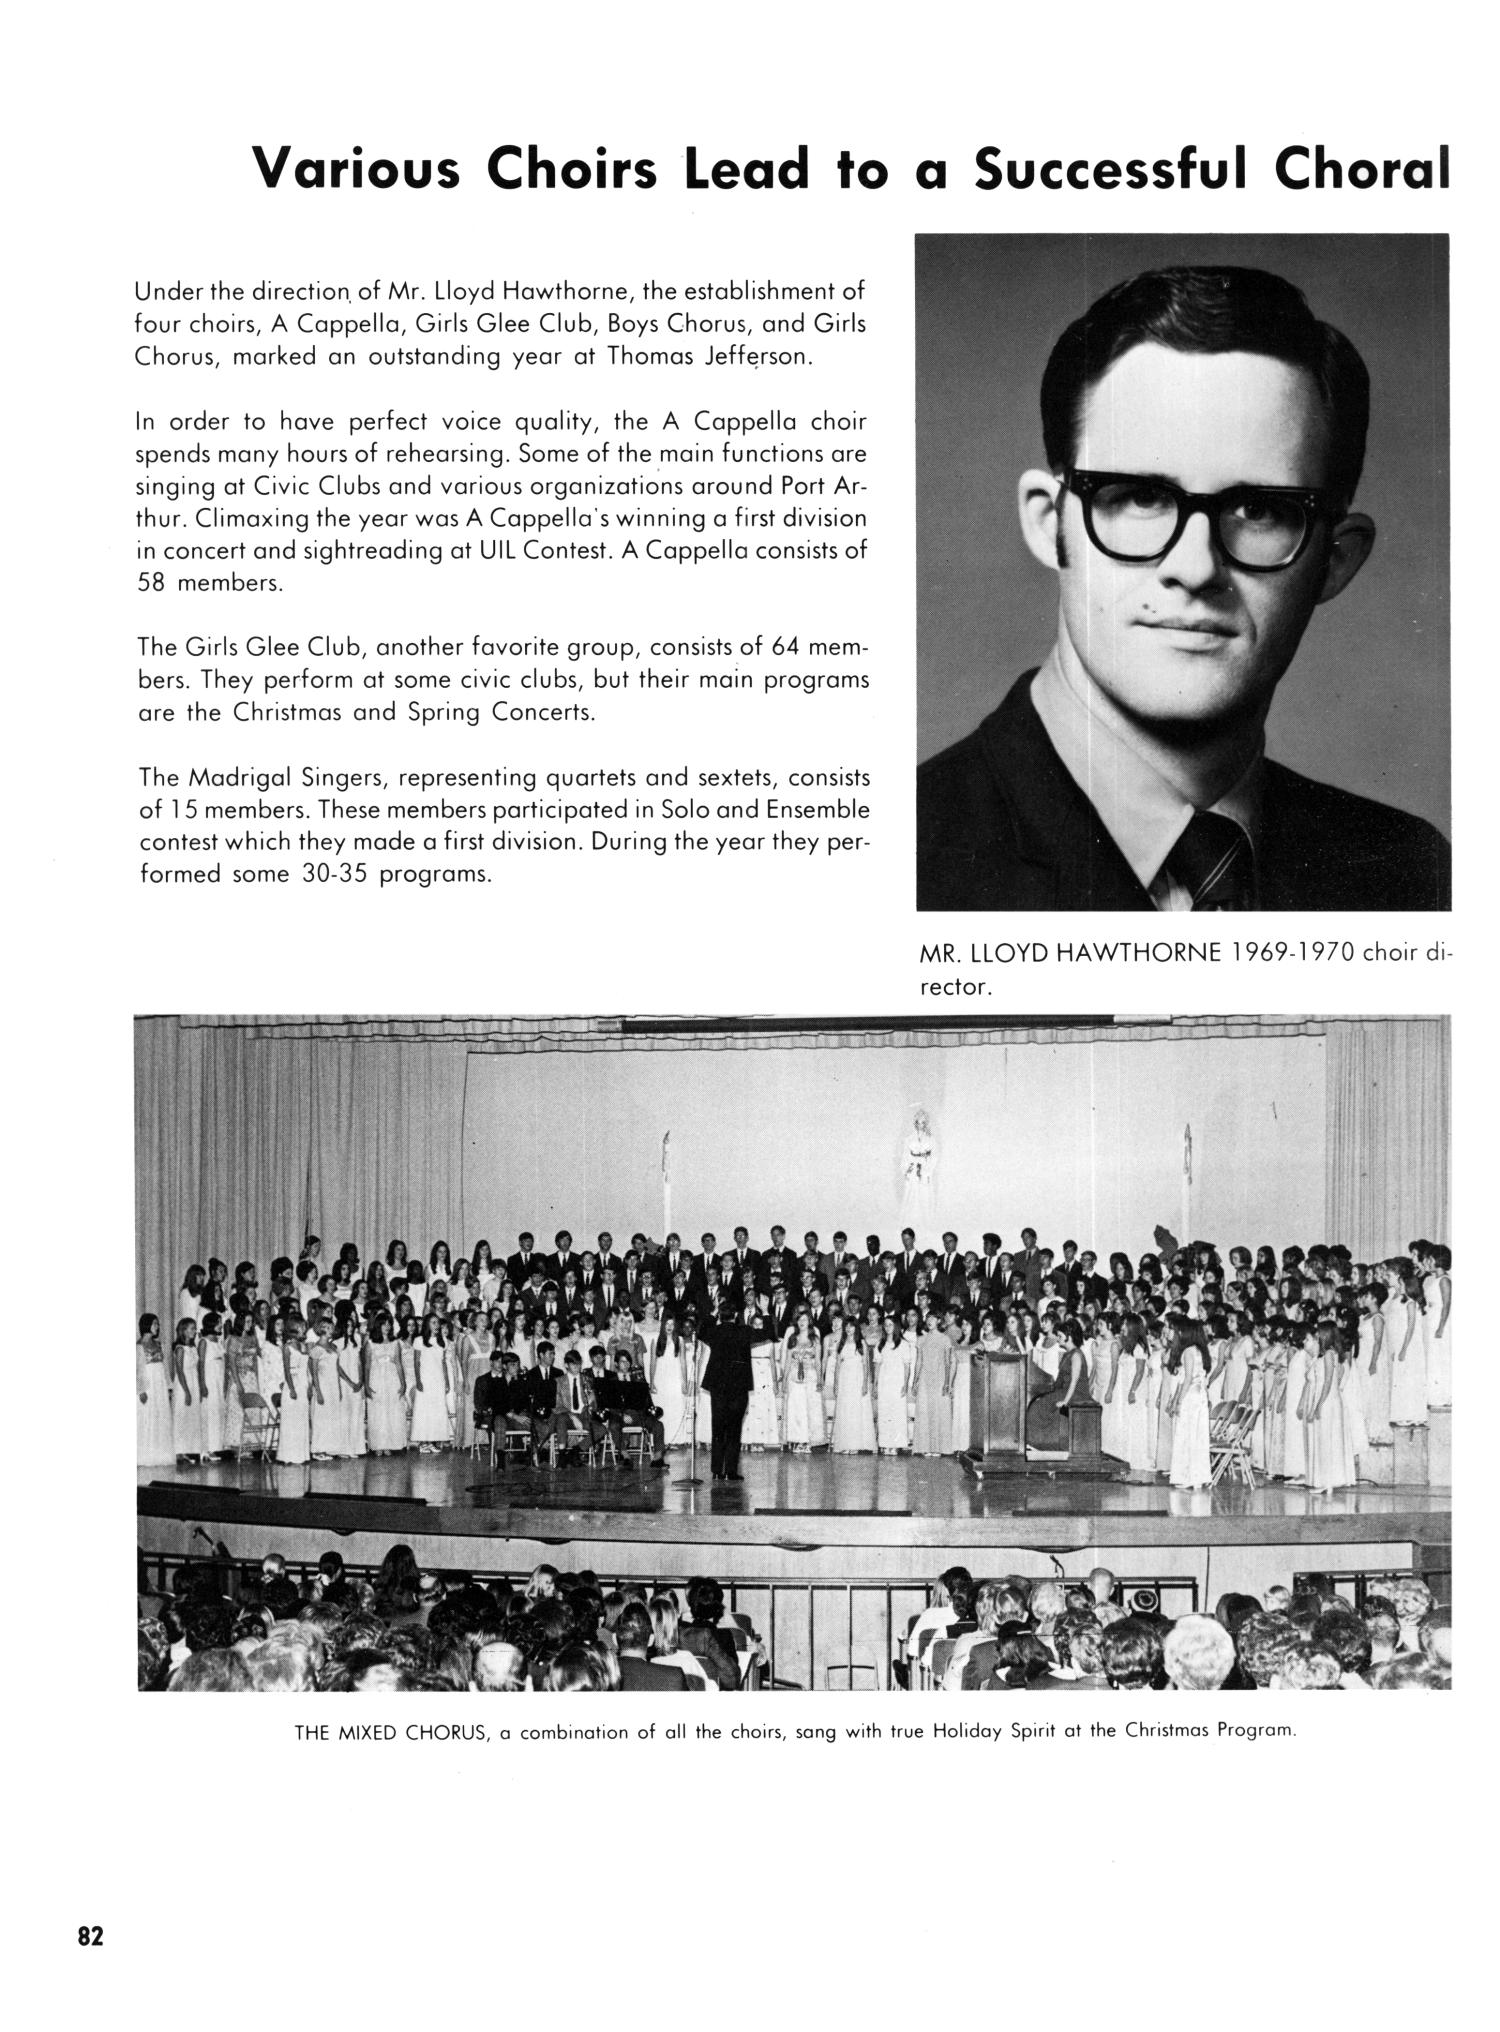 The Yellow Jacket, Yearbook of Thomas Jefferson High School, 1970                                                                                                      82